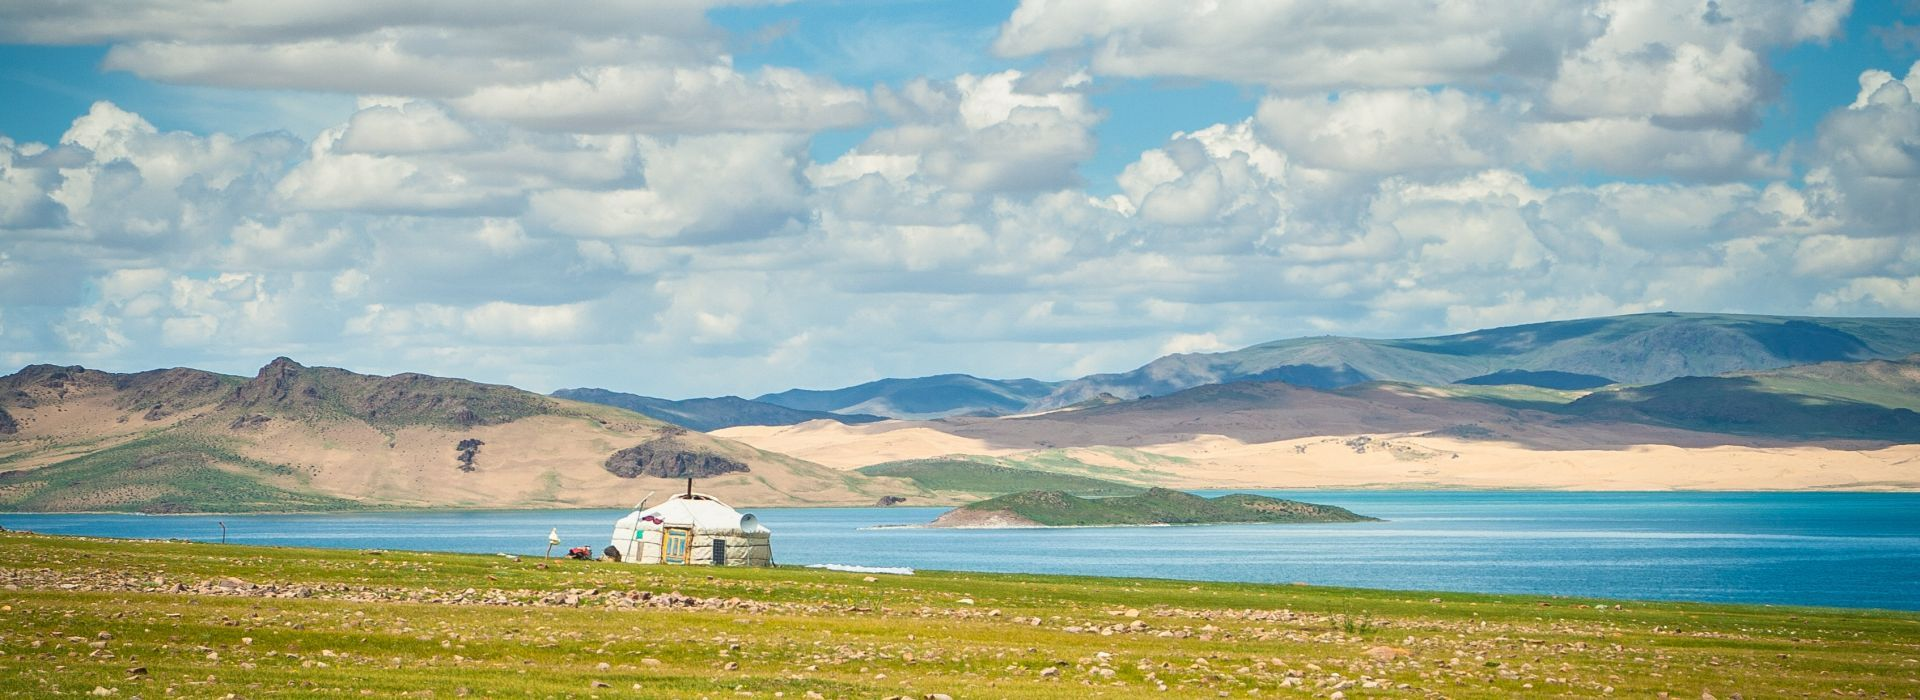 Cultural, religious and historic sites Tours in Mongolia